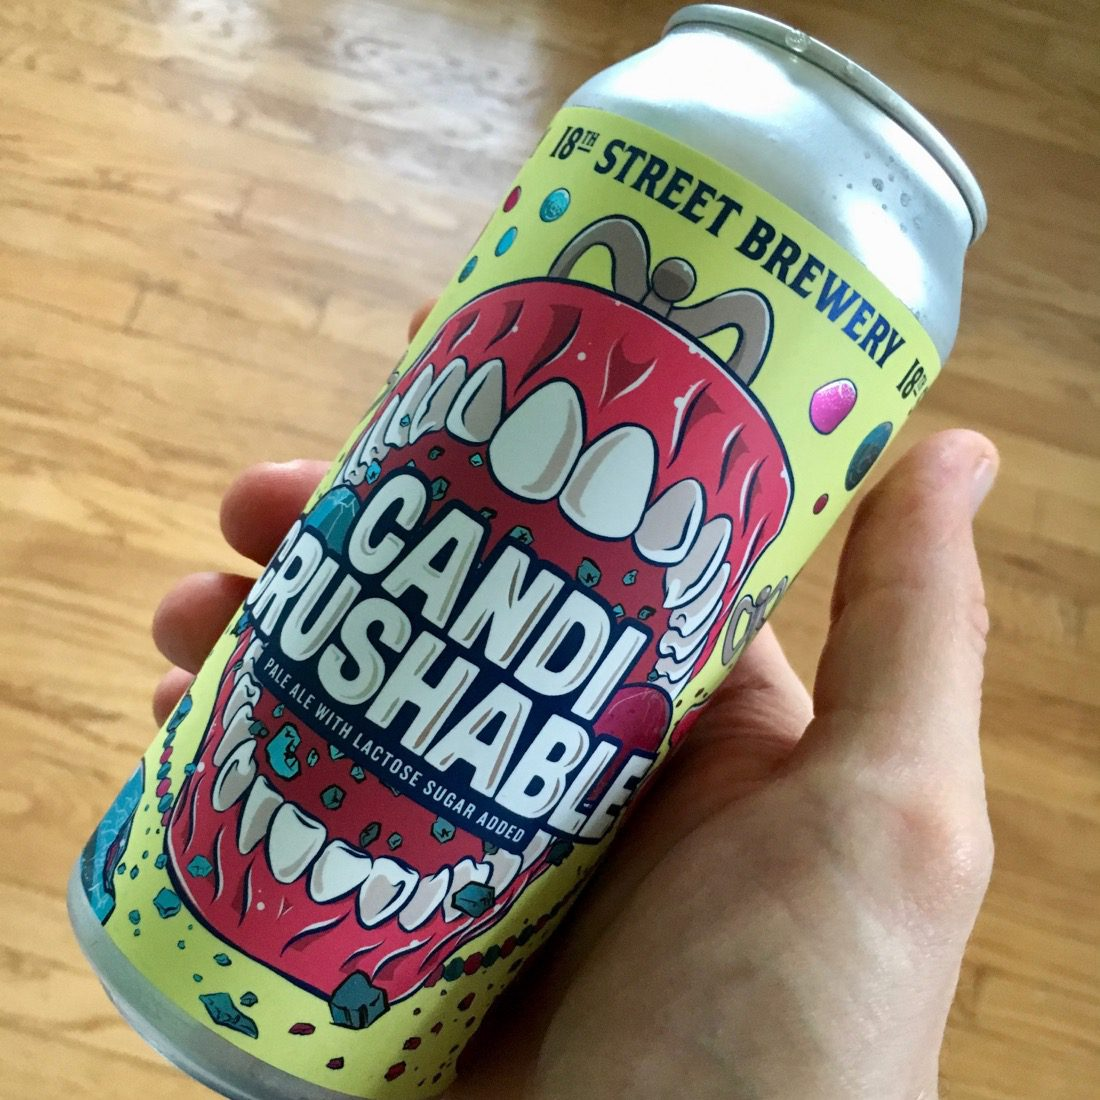 Afternoon Beer Break: 18th Street Candi Crushable